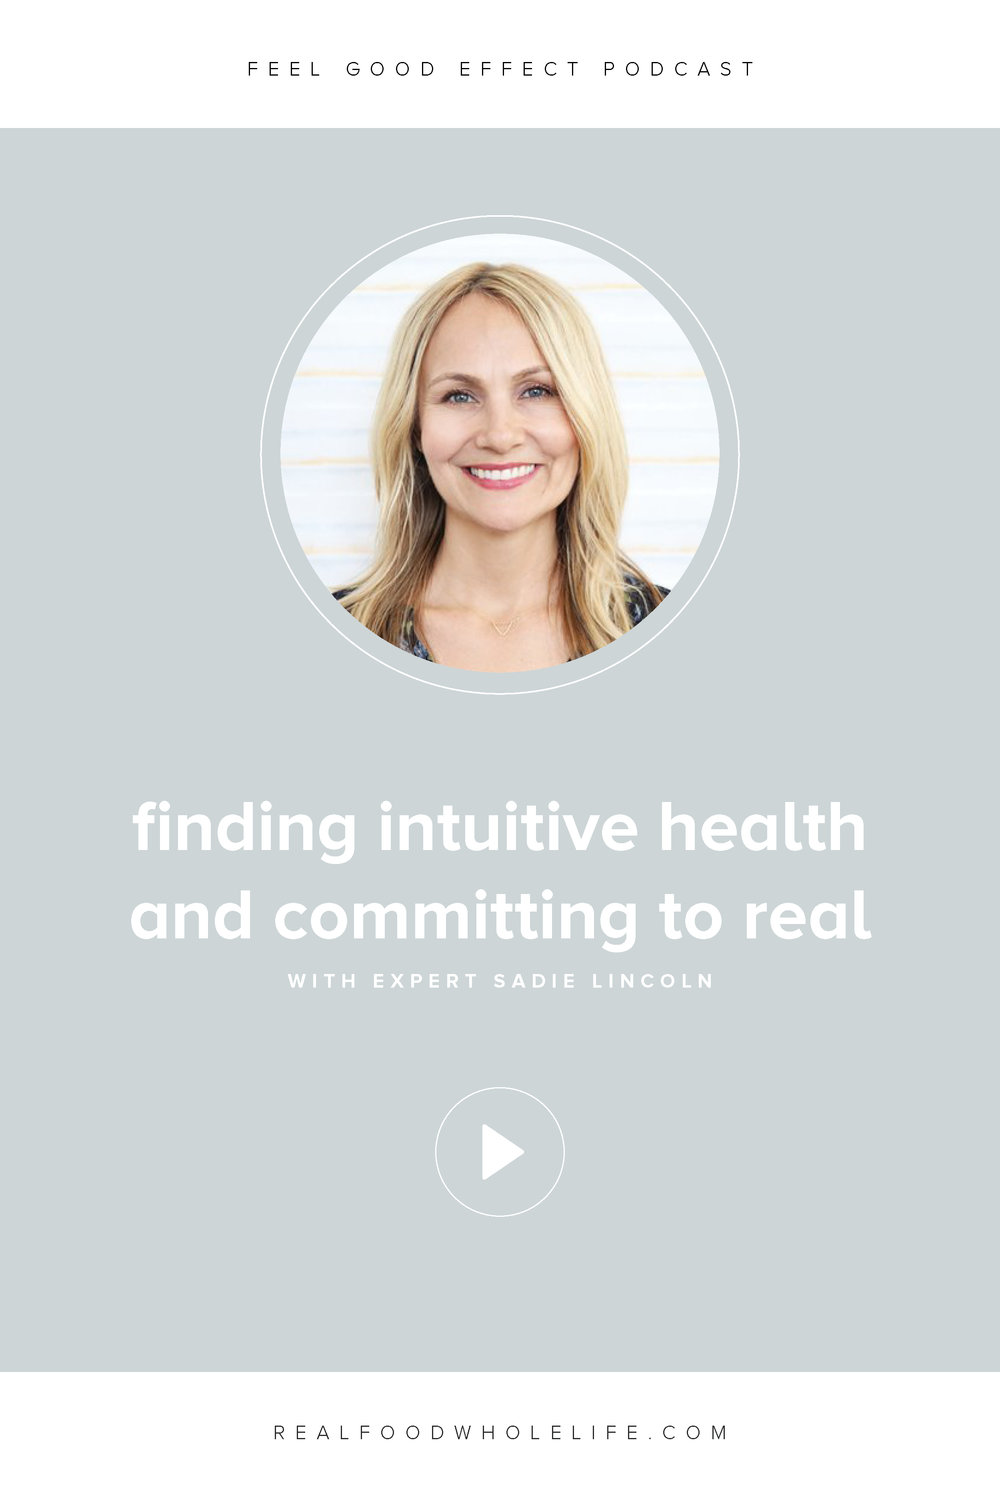 Feel Good Effect Podcast Finding Intuitive Health with Sadie Lincoln